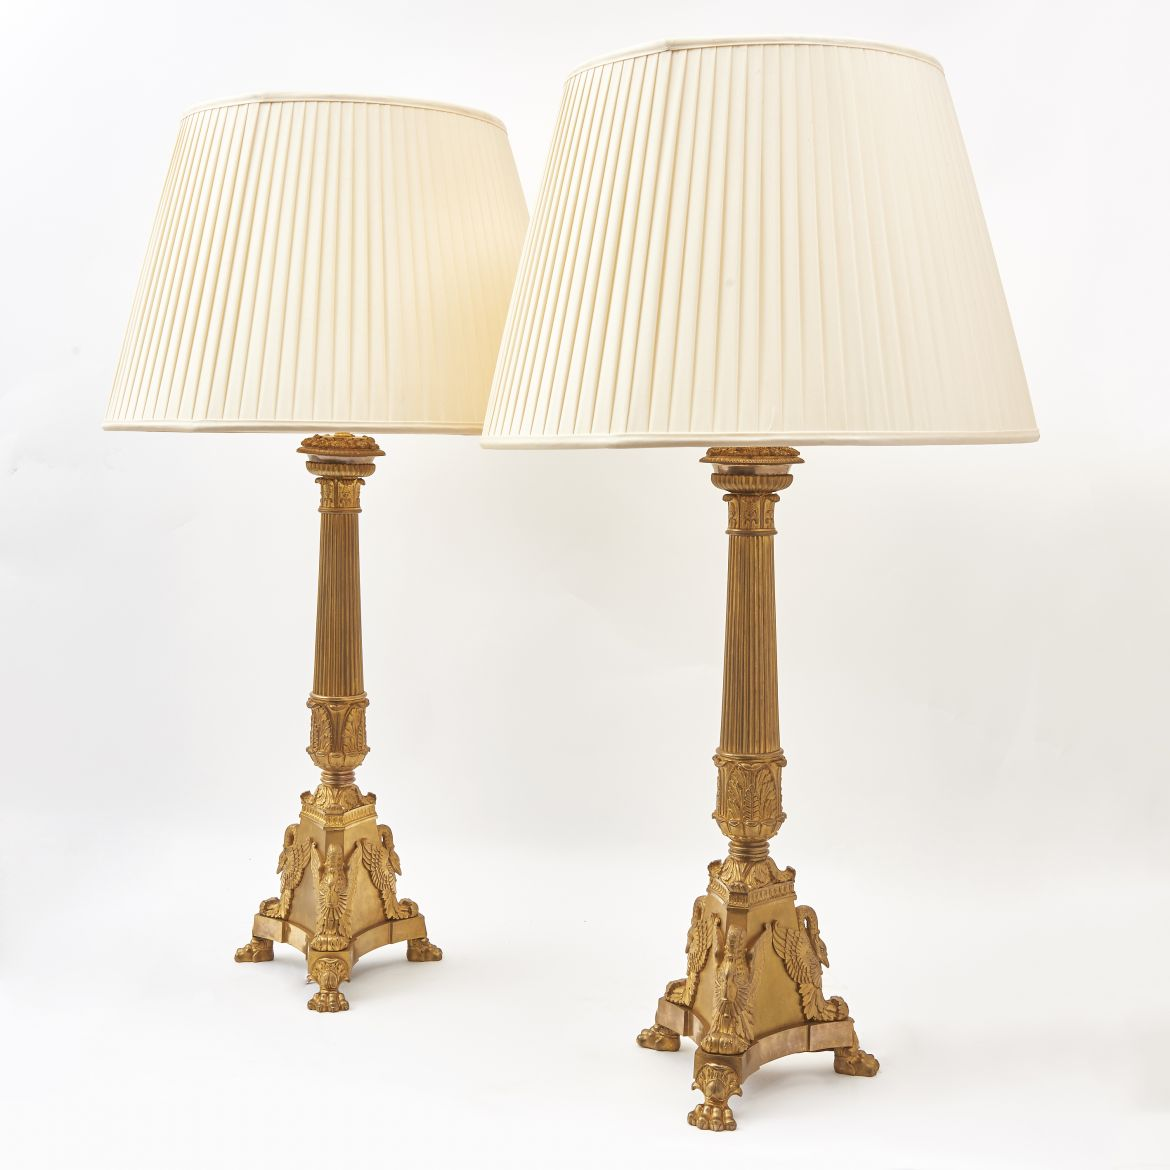 French Louis Philippe Gilt Bronze Column Lamps With Triform Bases